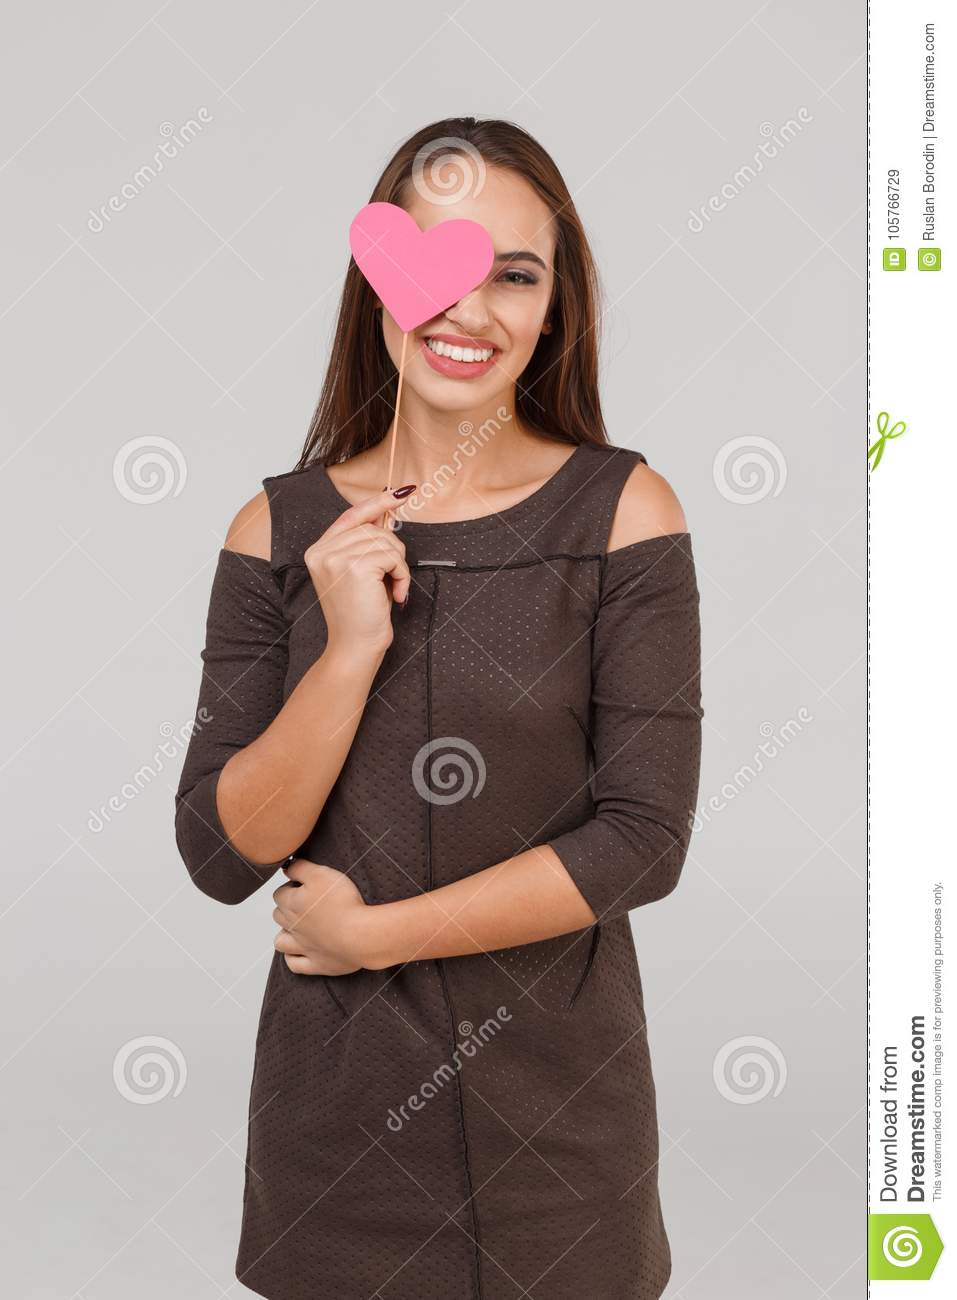 Young beautiful girl with a little pink heart on her eyes on a grey background. Valentine`s concept.